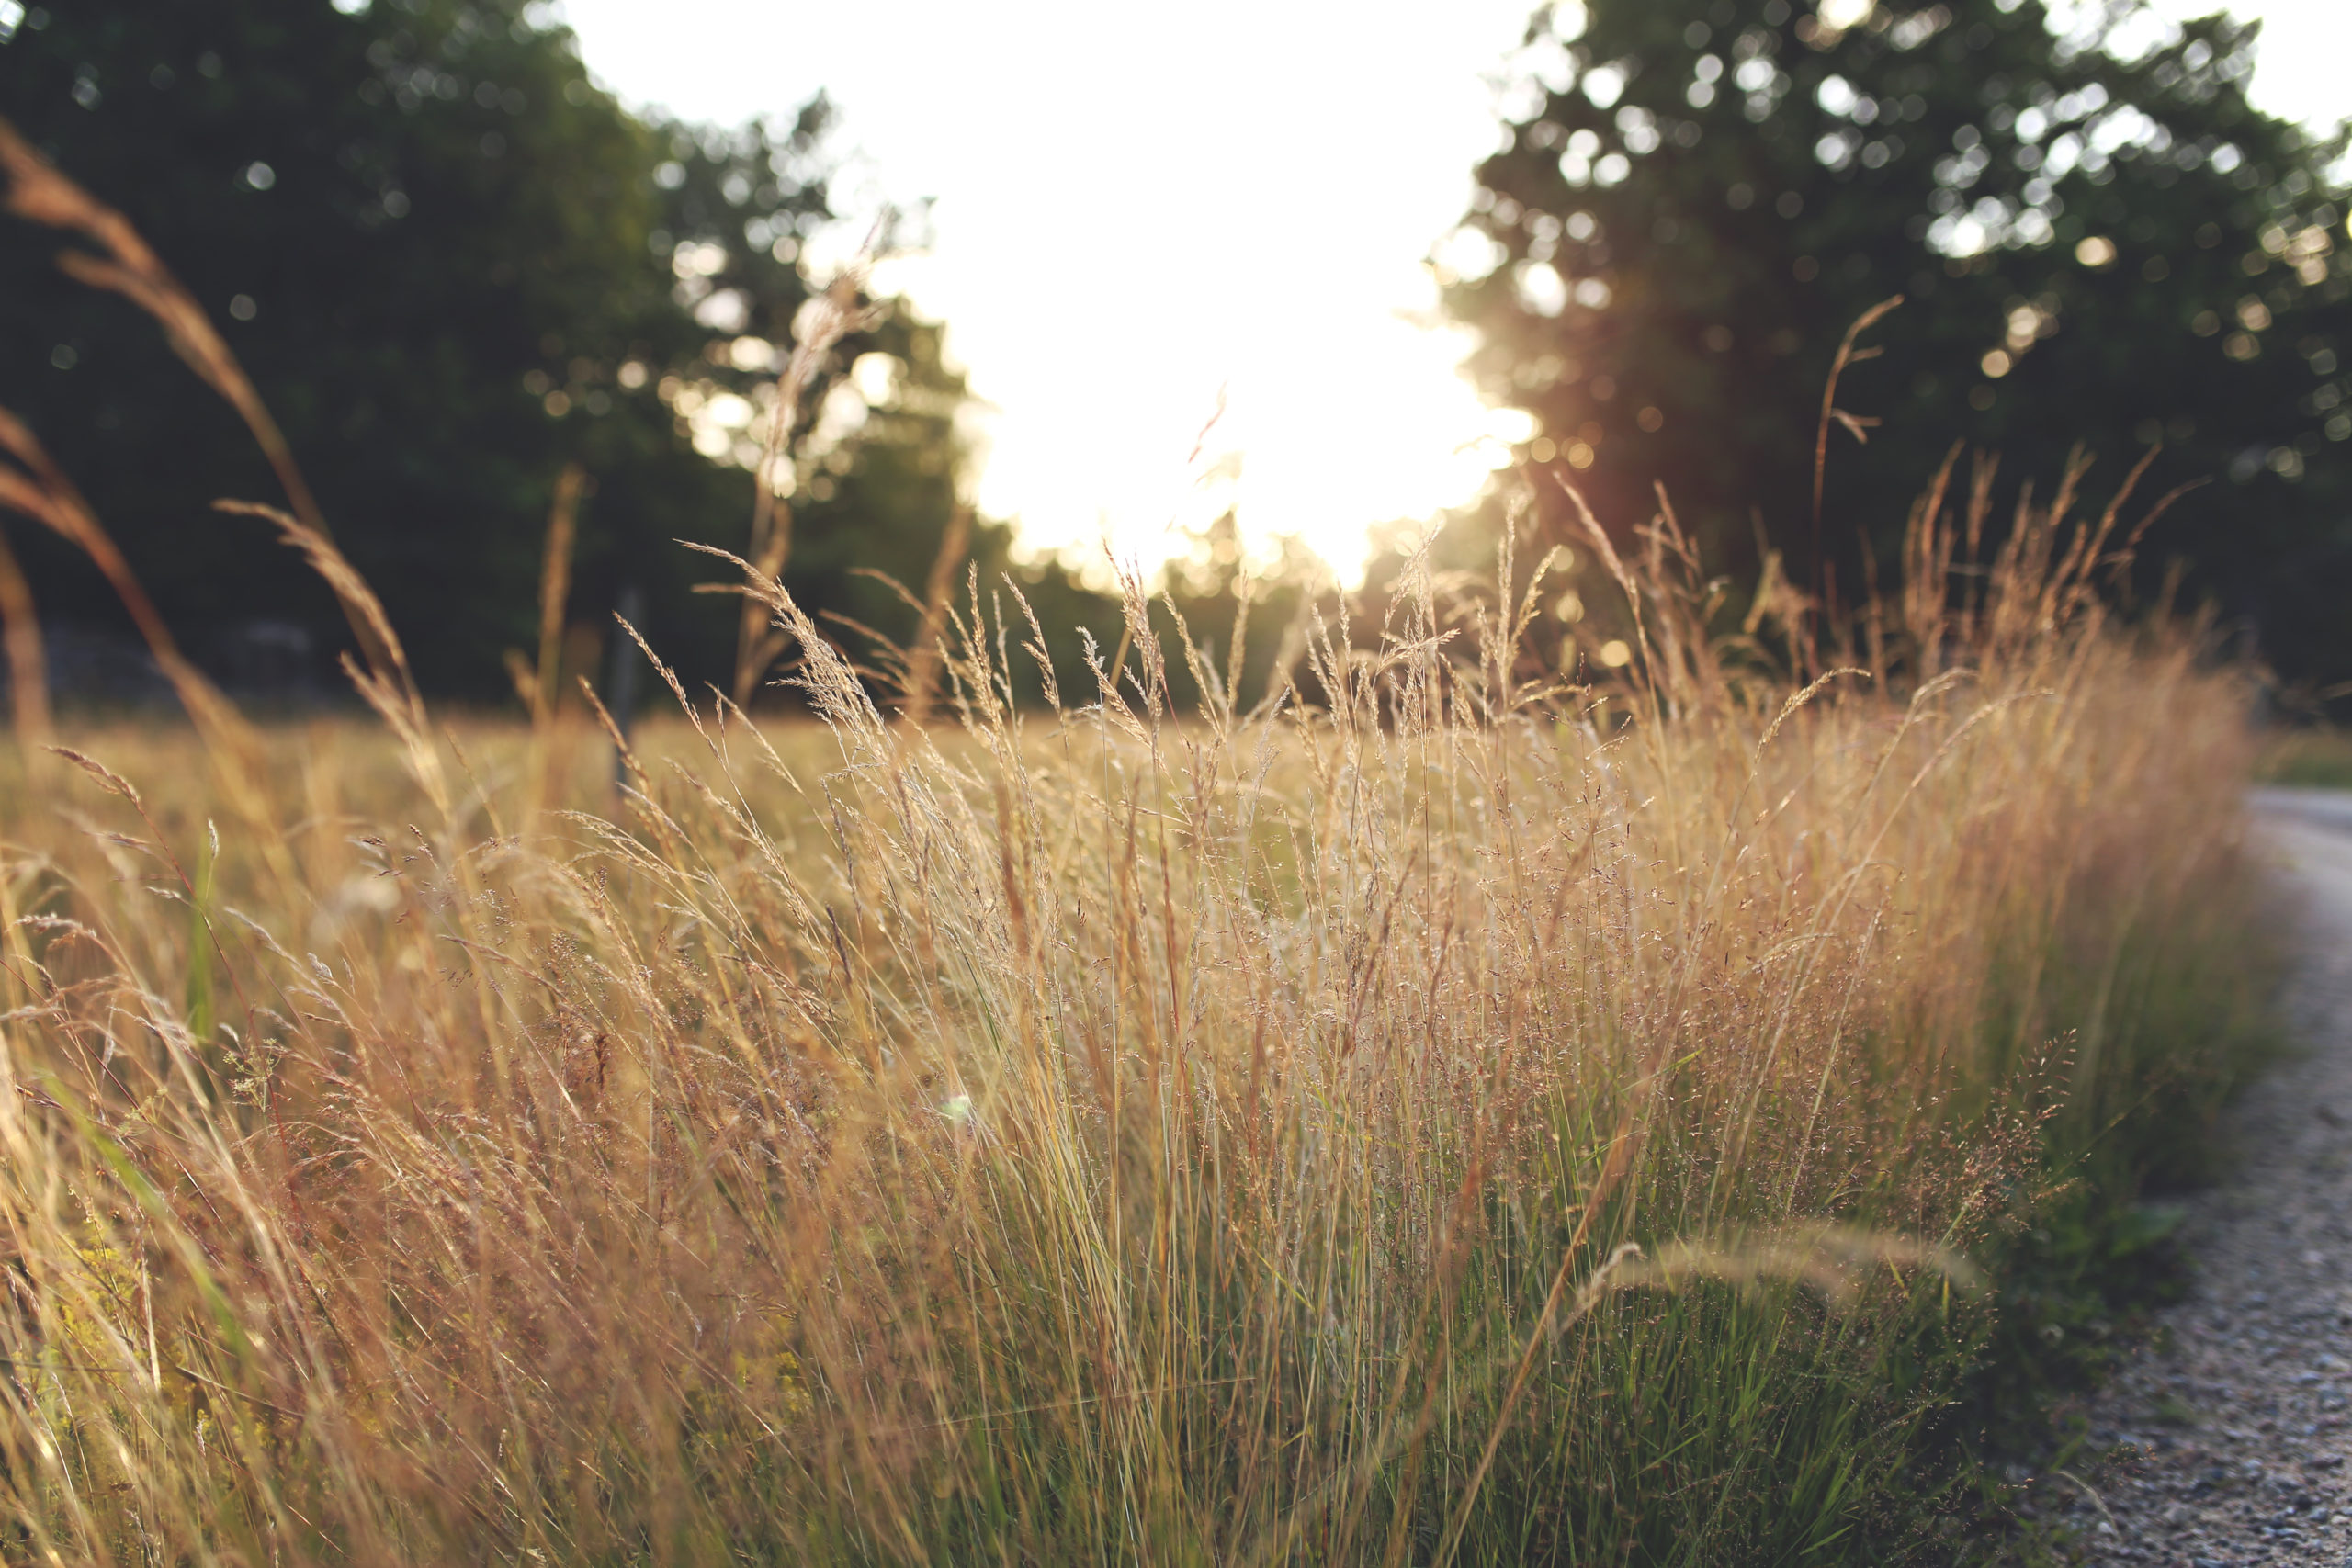 Sunset in the field all over